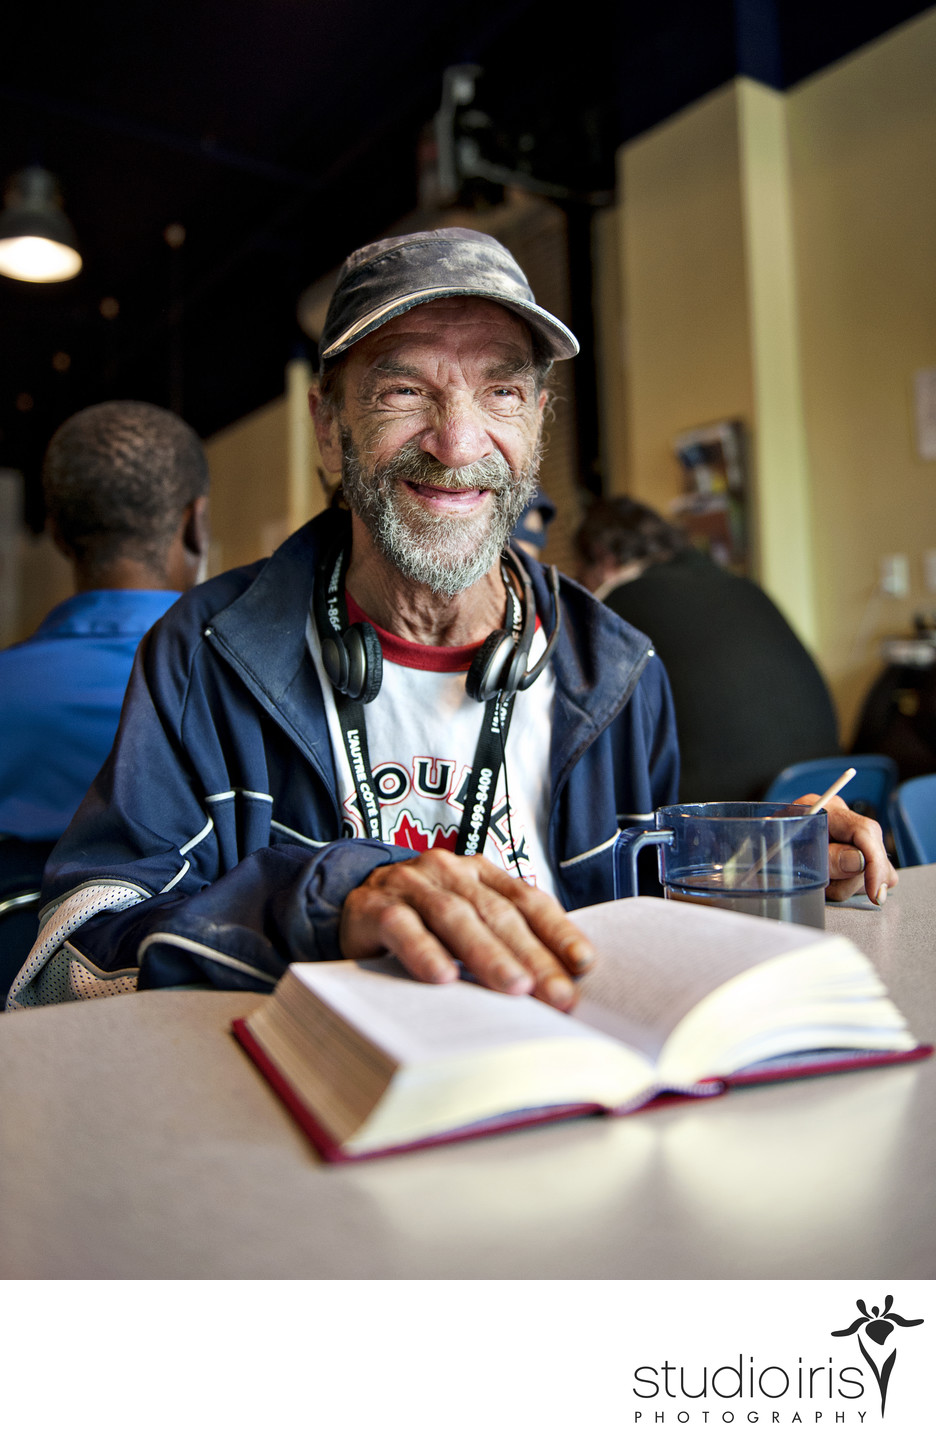 Ramond Carrier enjoys a free cup of coffee and place to read his book at Montreal's Café Mission